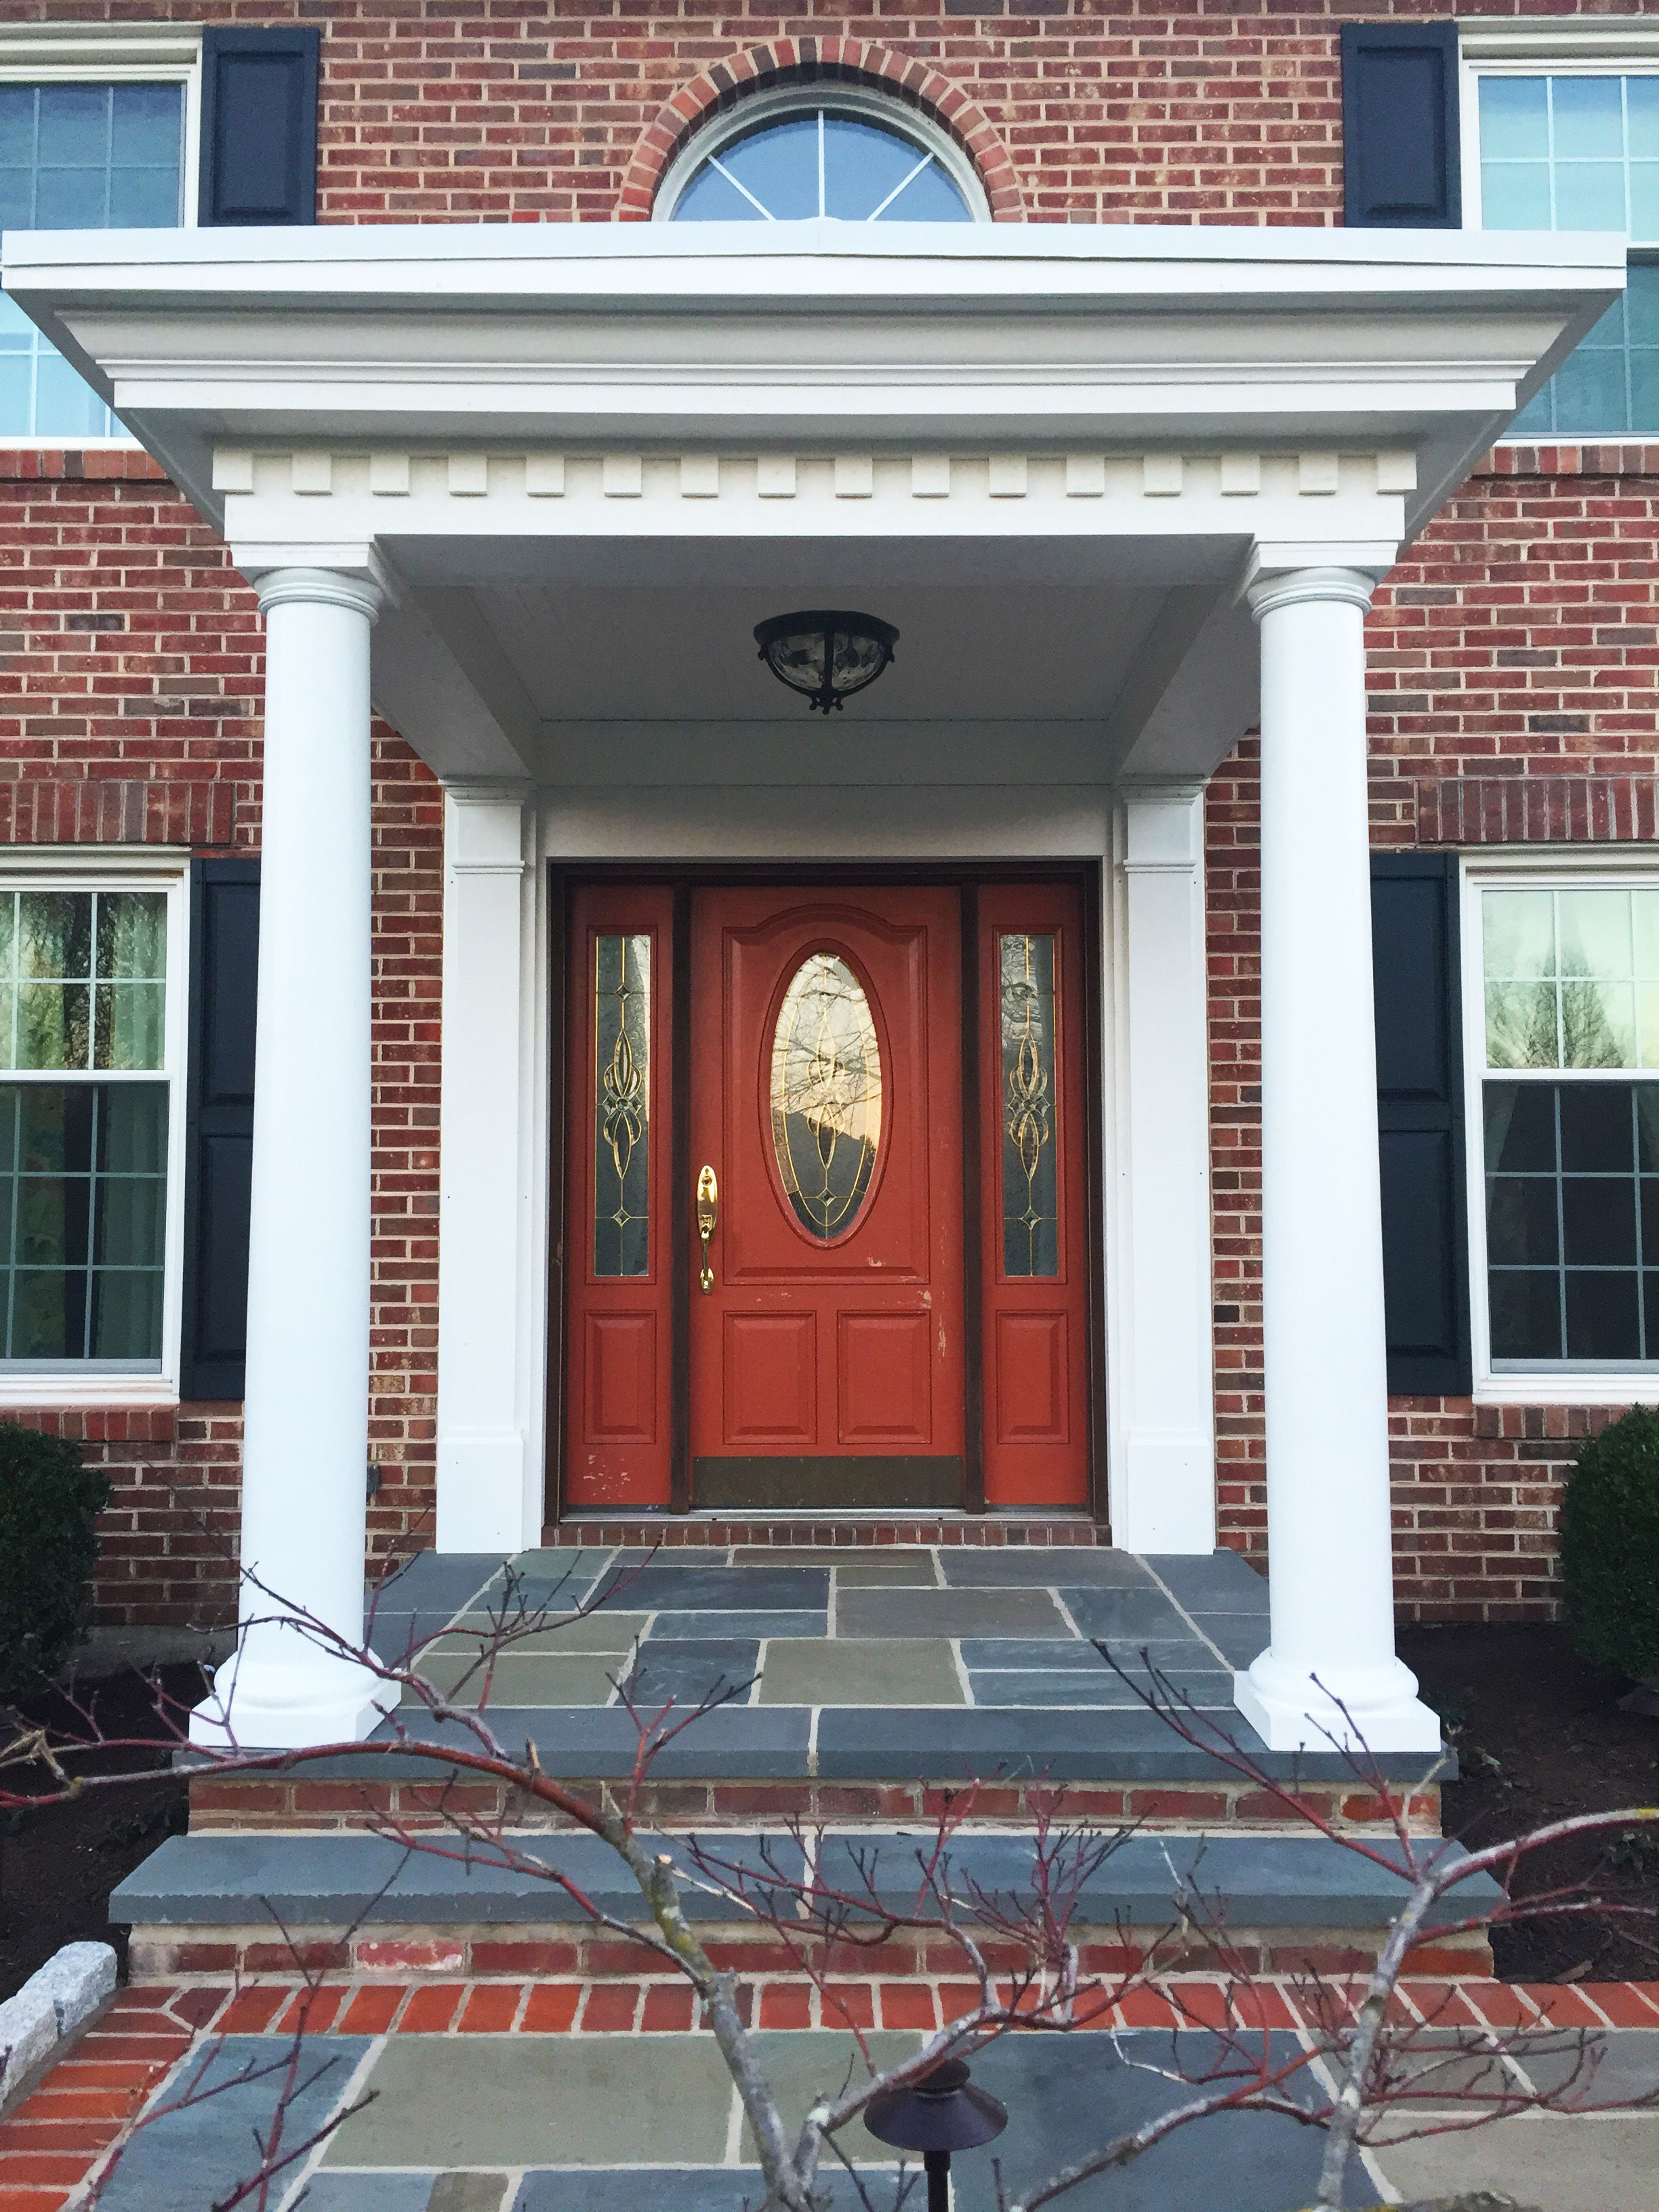 Outdoor Living | Outdoor living design, Portico entry ... on Disabatino Outdoor Living id=91900